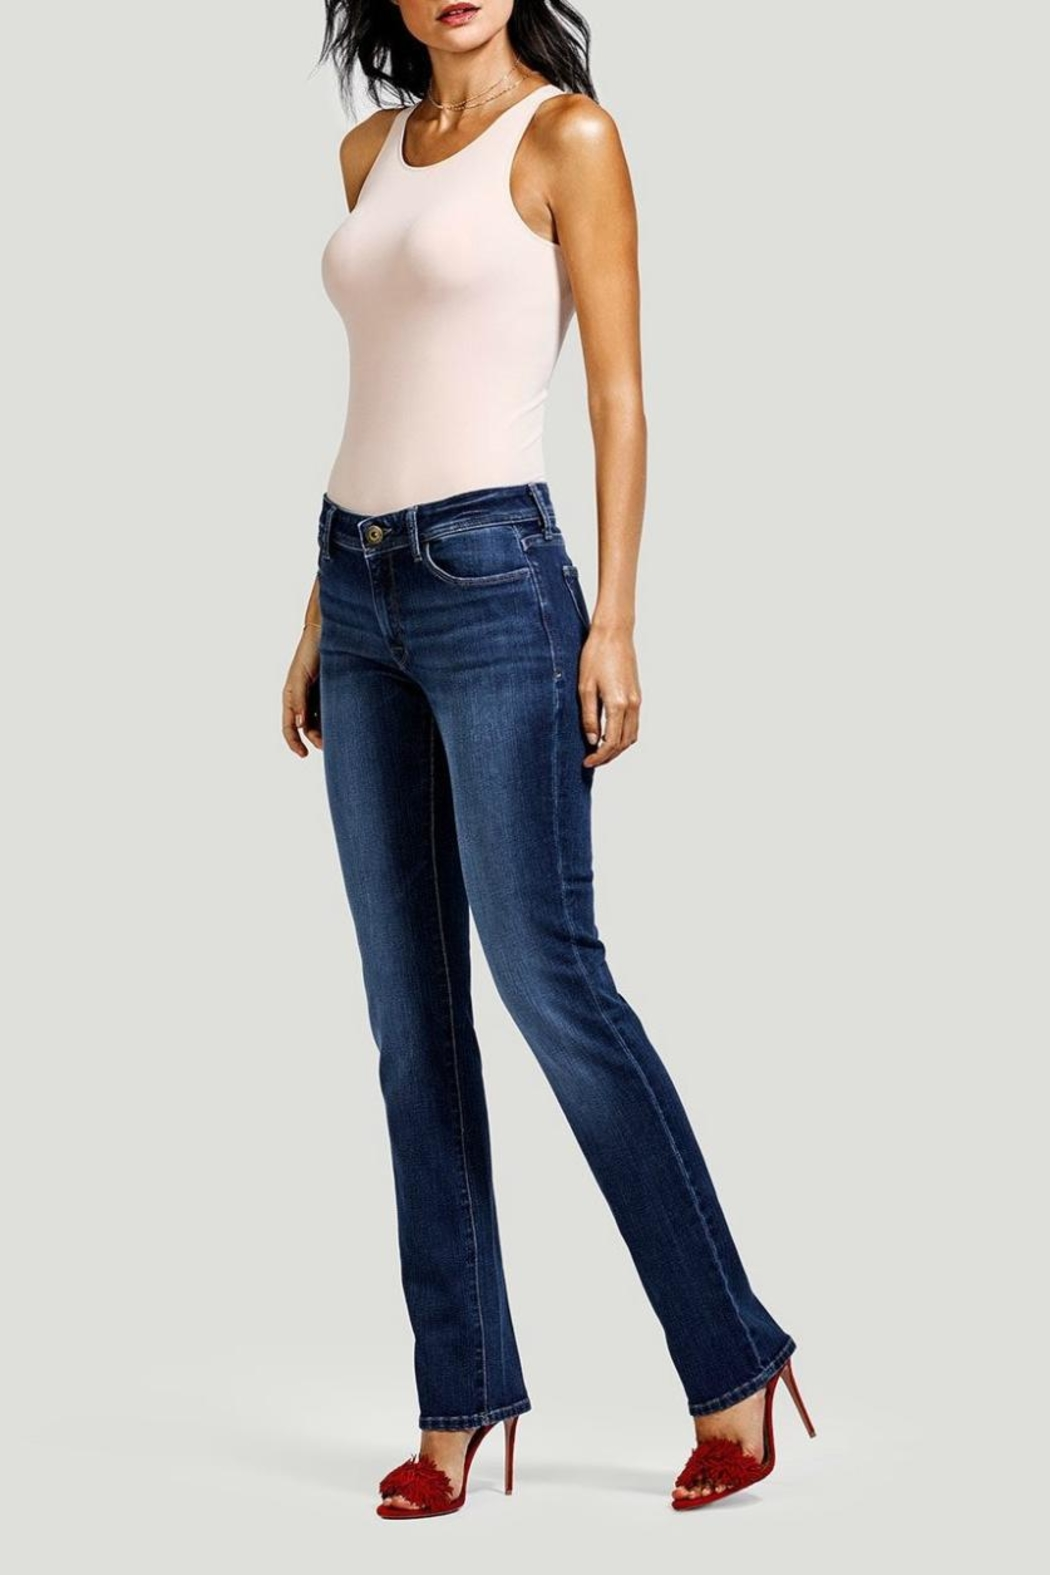 DL1961 Curvy Coco Pacific Jeans - Main Image